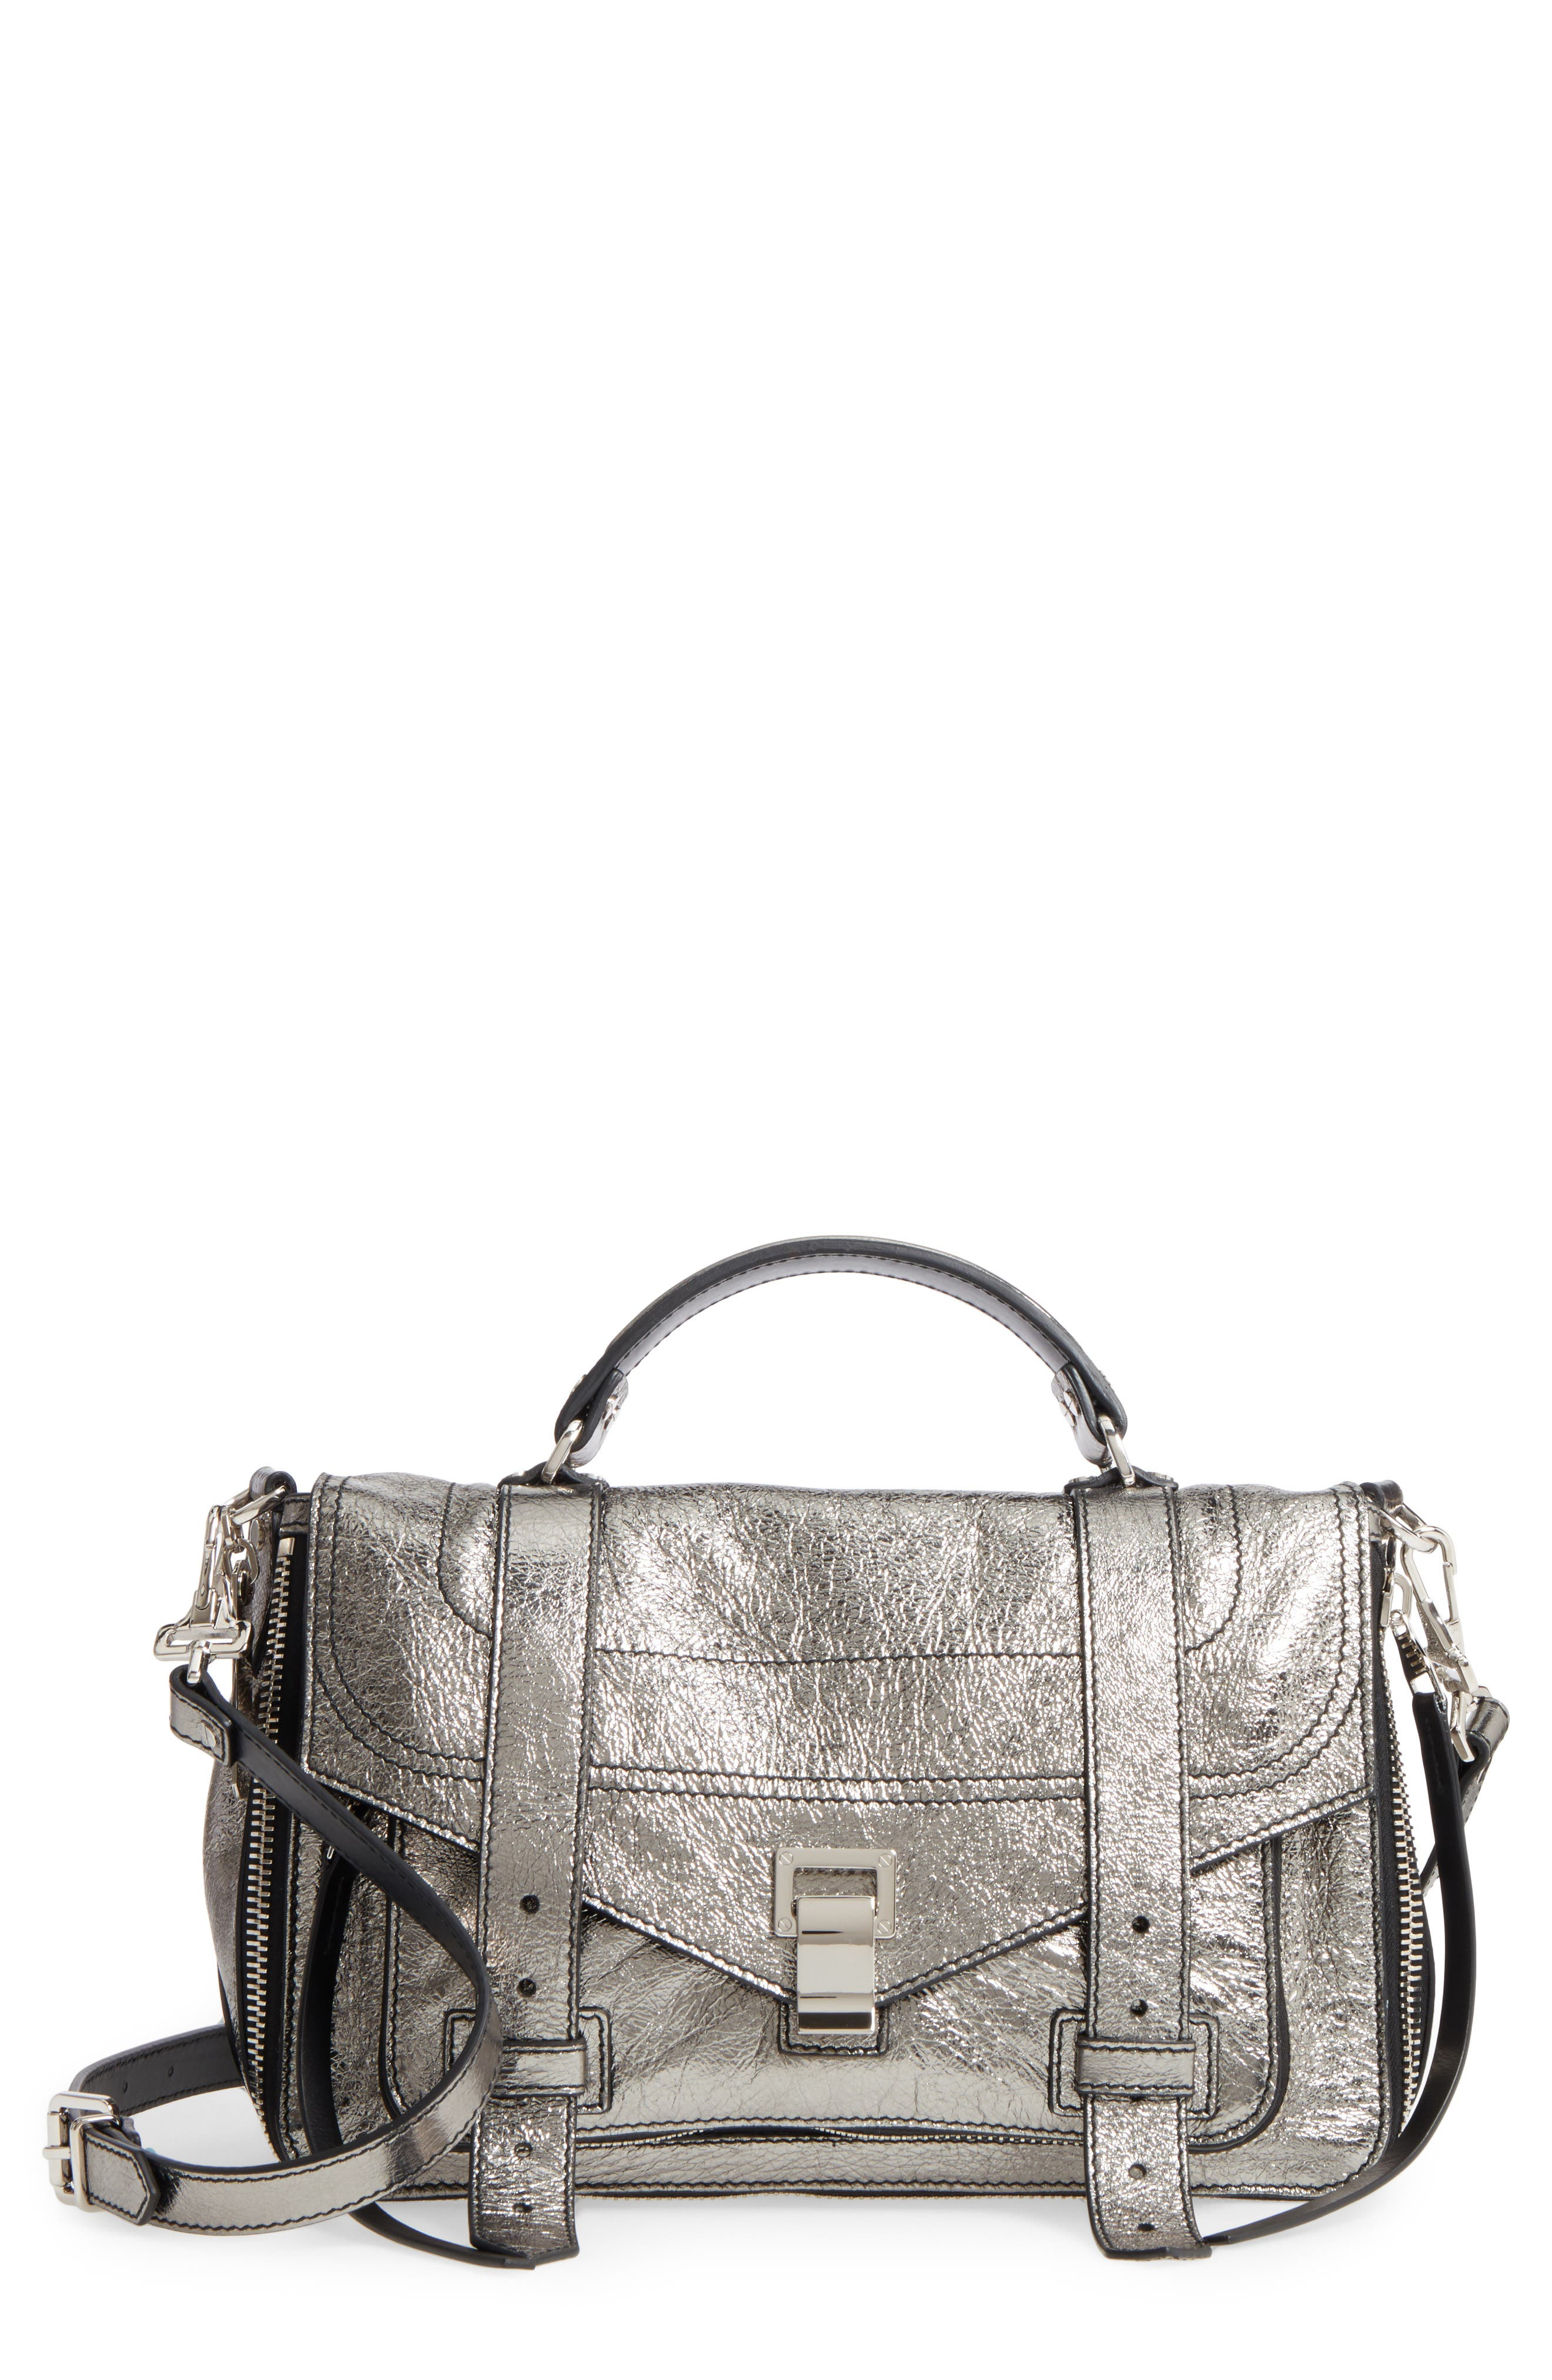 Medium PS1 Metallic Calfskin Satchel,                             Main thumbnail 1, color,                             Dark Silver